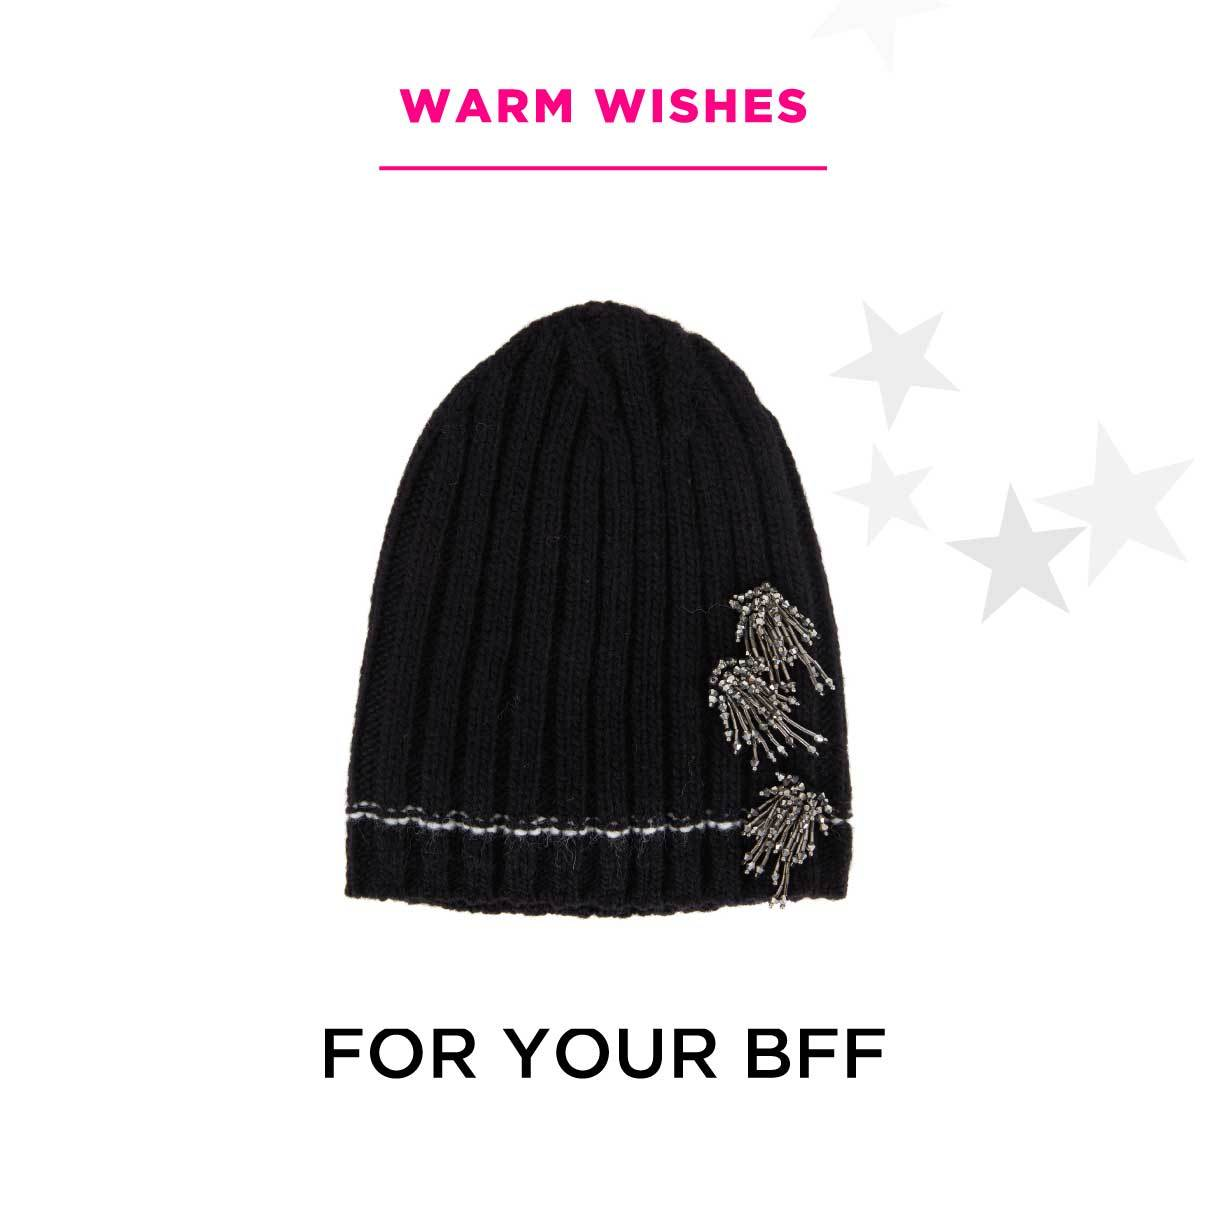 Best Gifts for your BFF